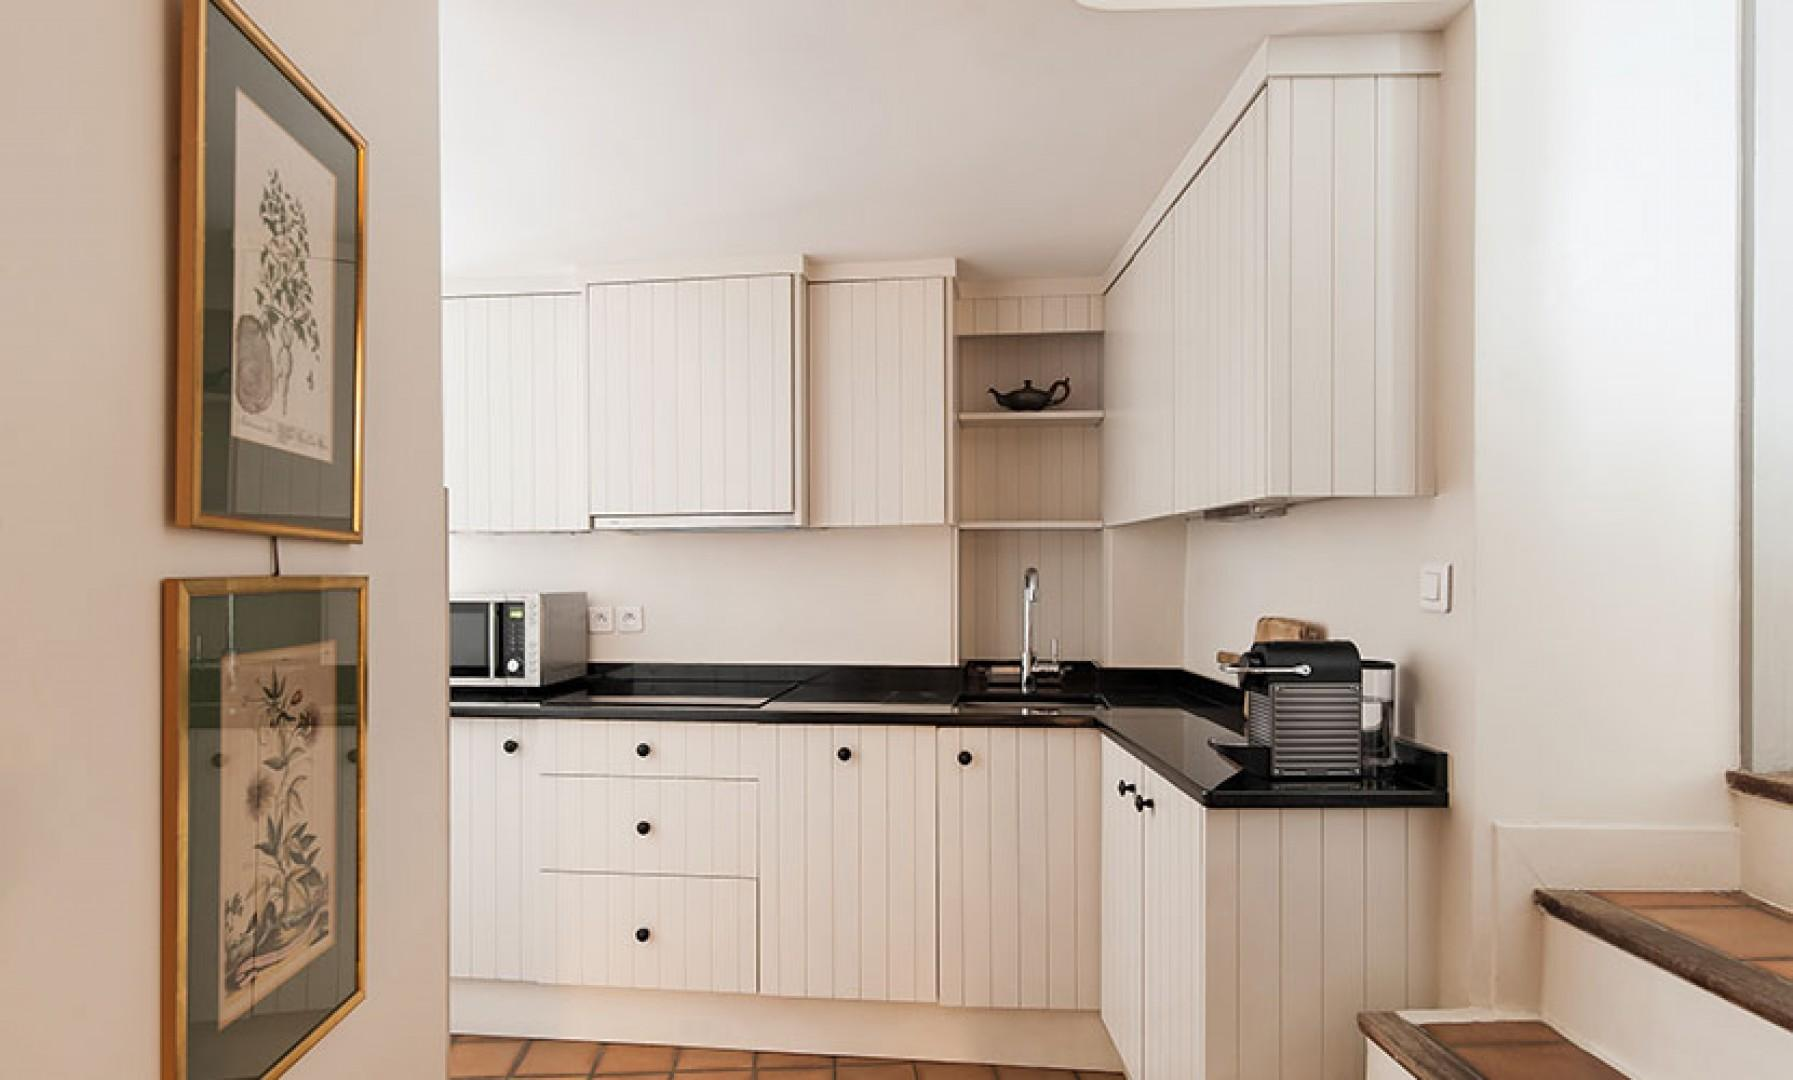 Steps lead down to the stylish black and white kitchen.